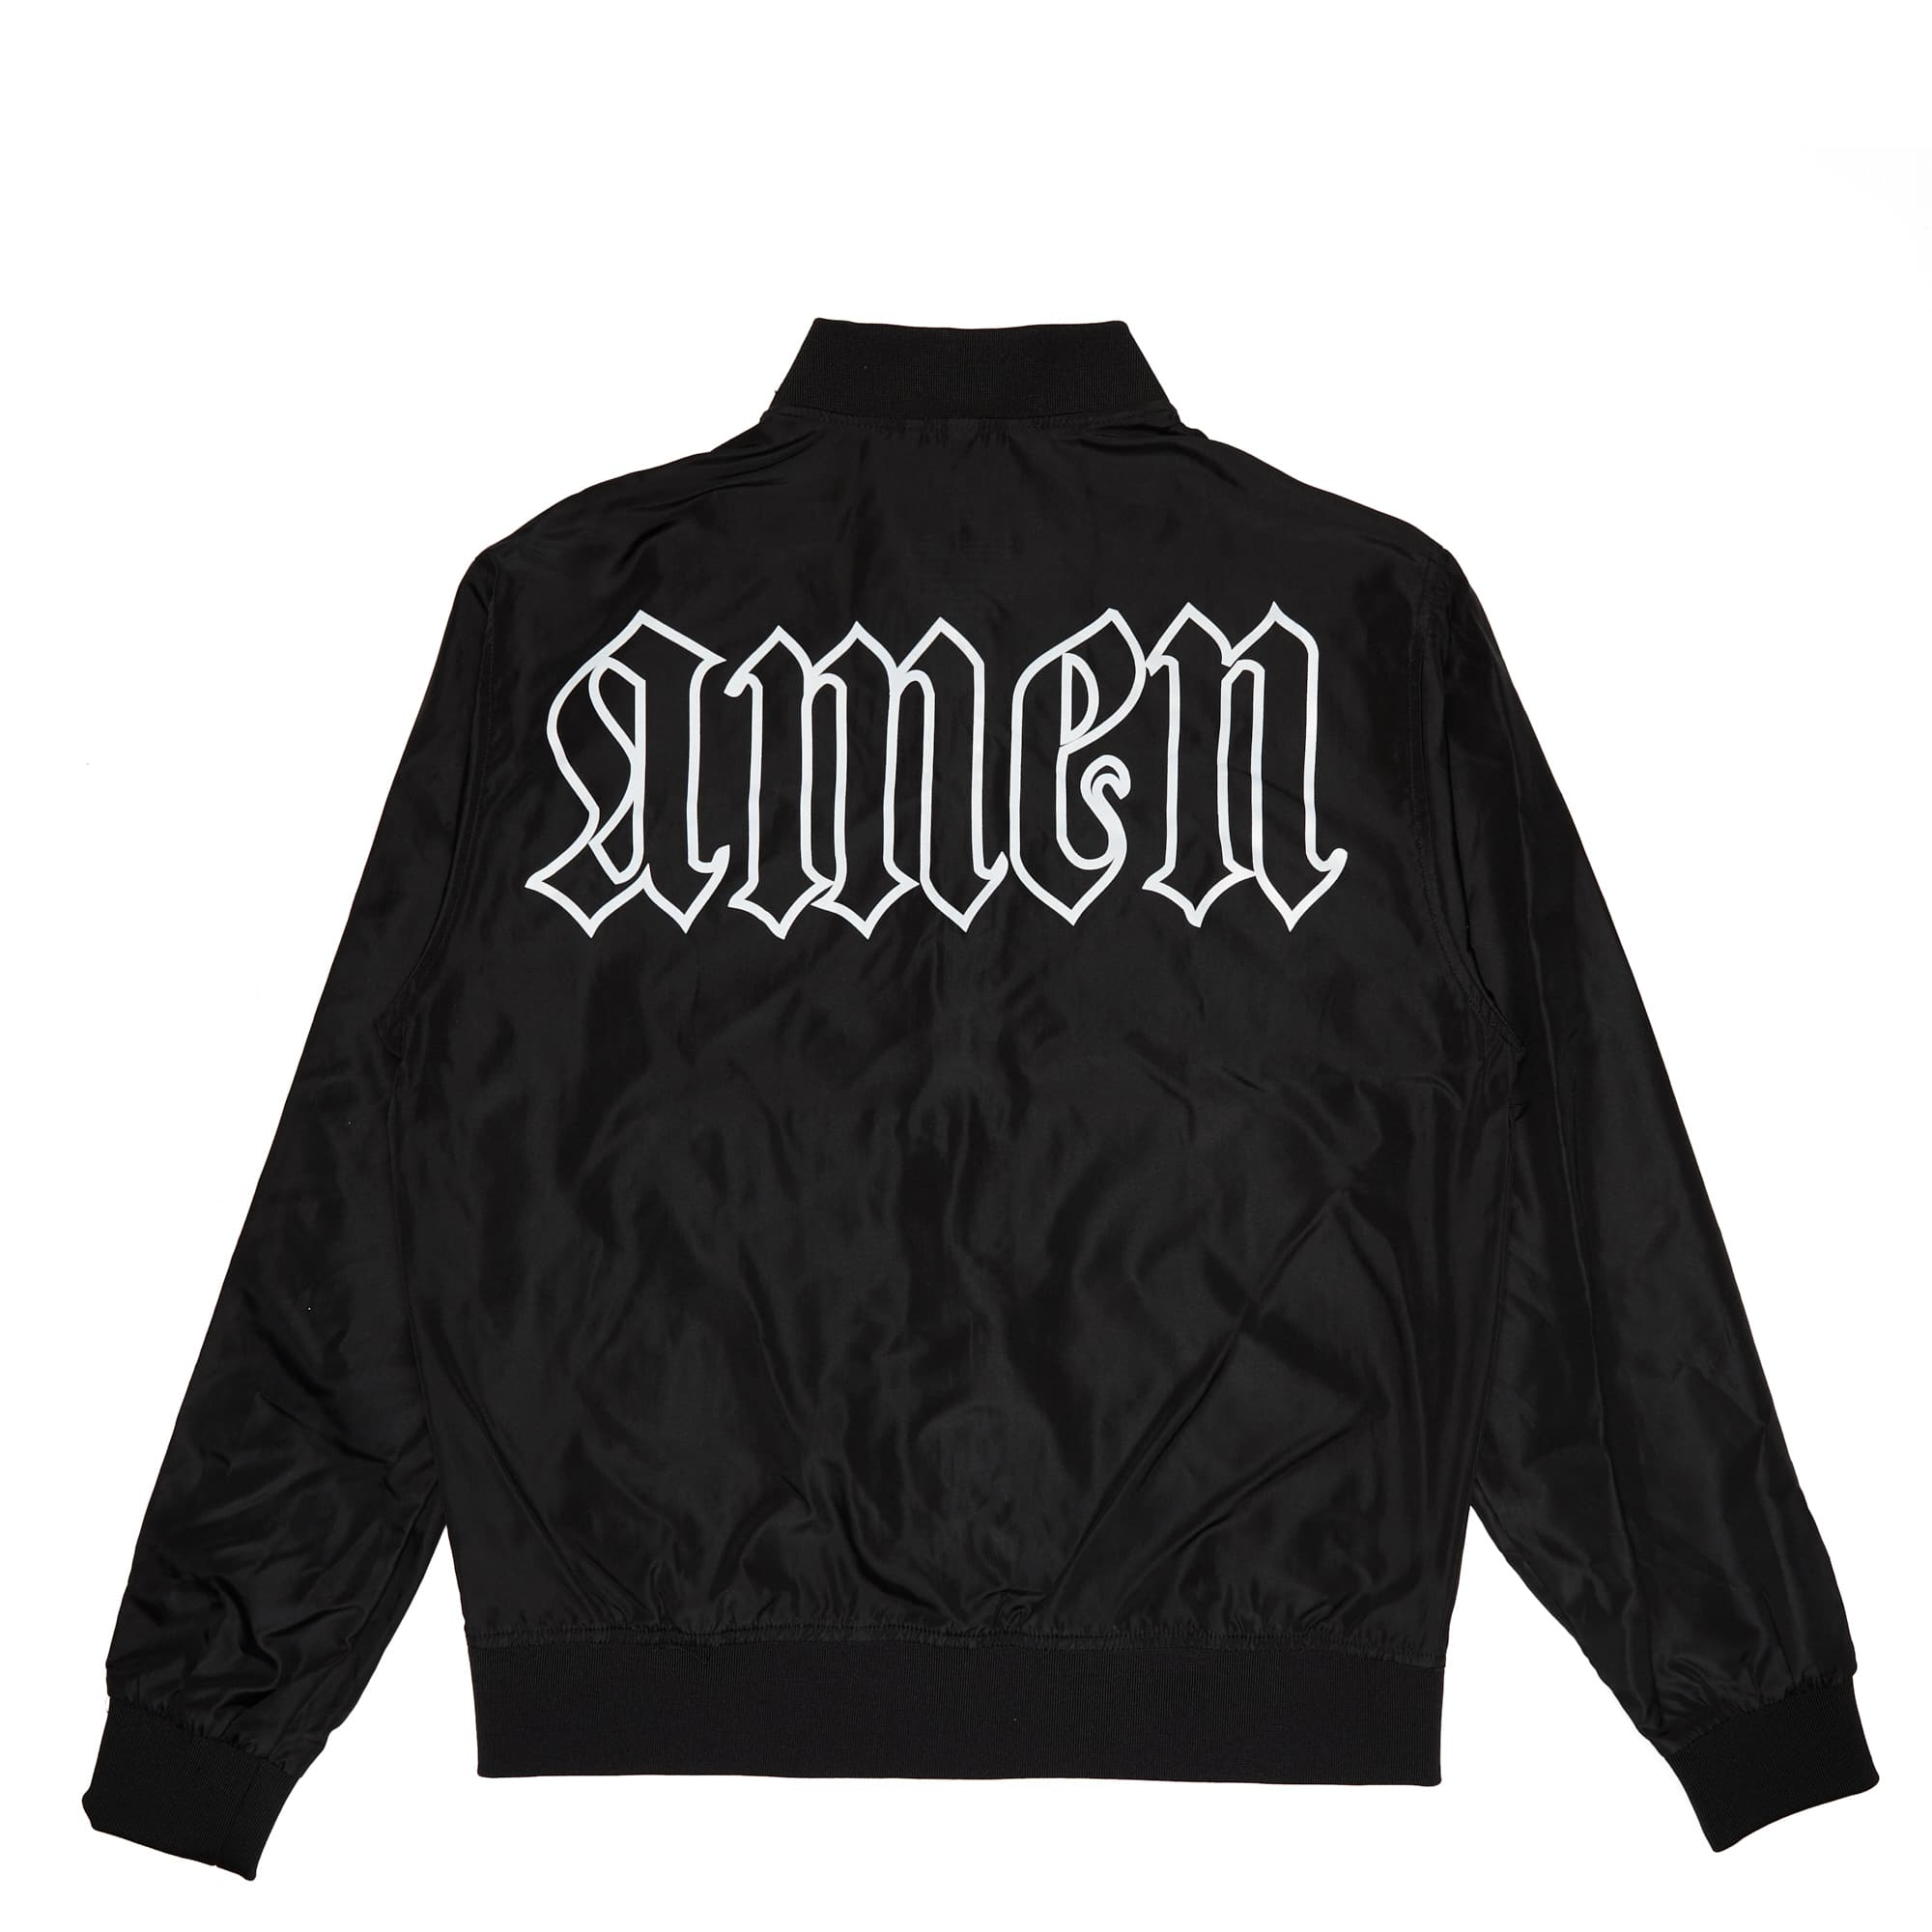 'Amen' Lightweight Bomber Jacket